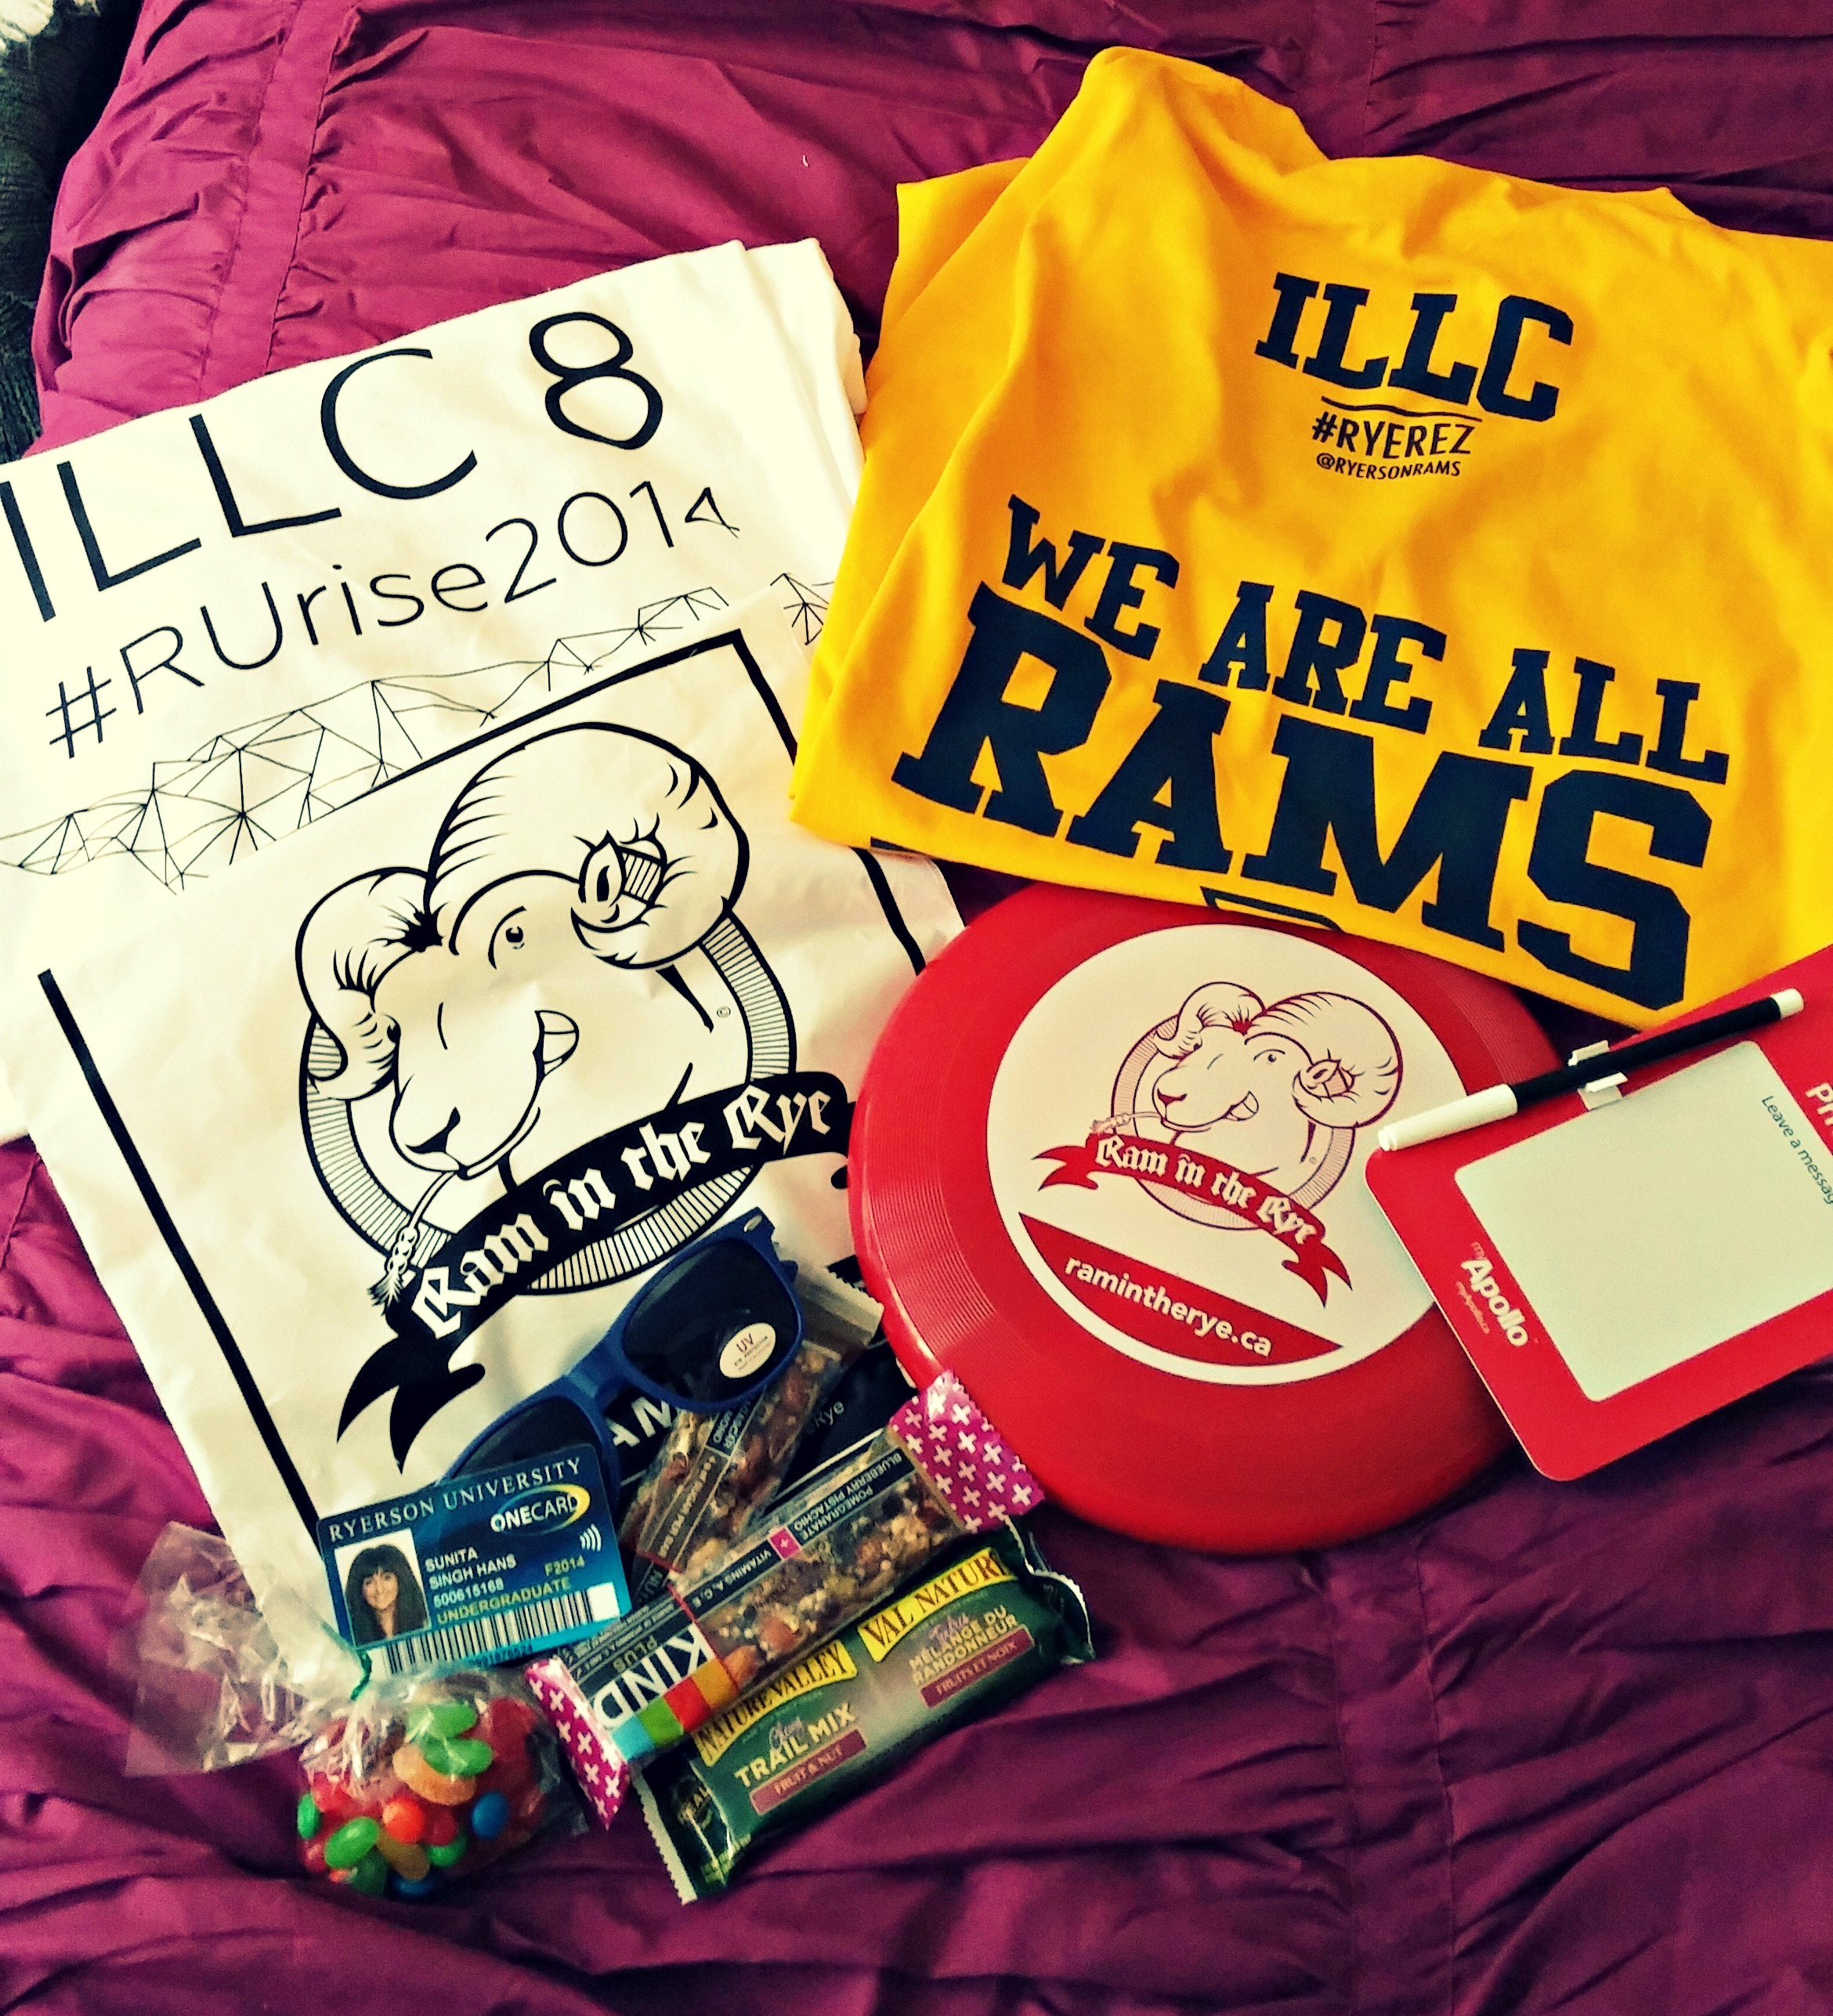 Welcome package from ILLC!